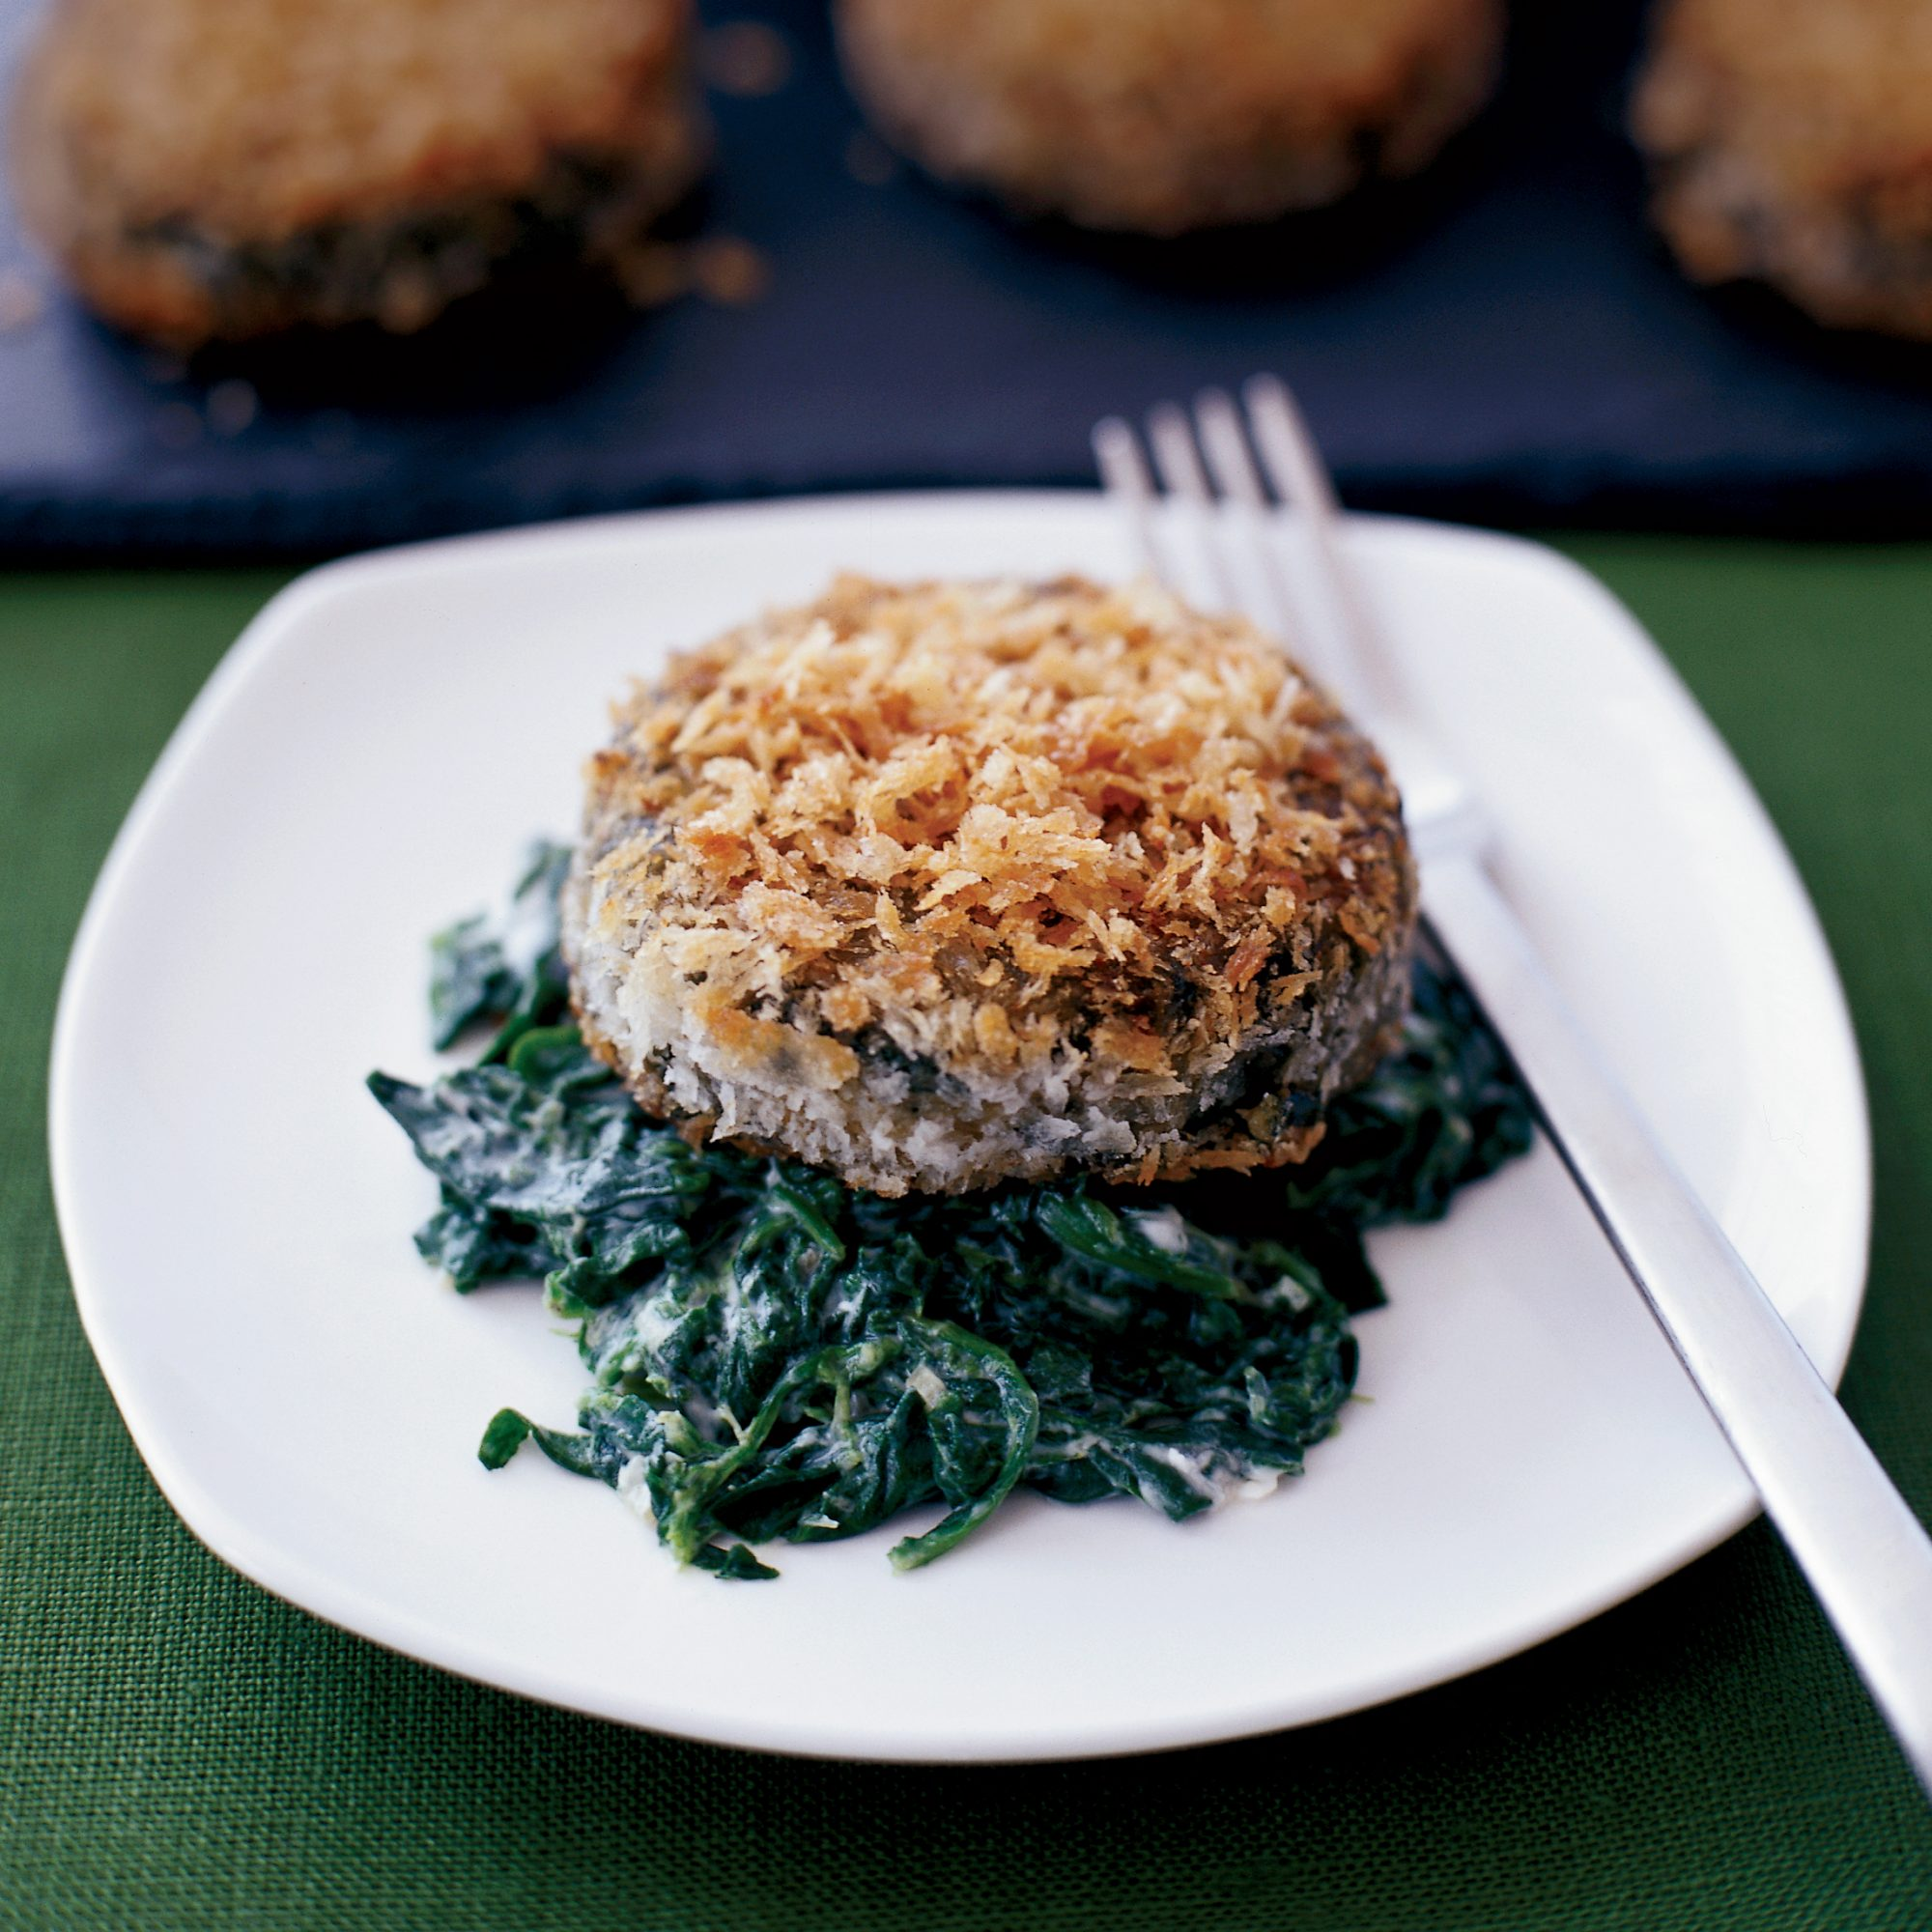 Crispy Swiss Chard Cakes with Mascarpone-Creamed Spinach